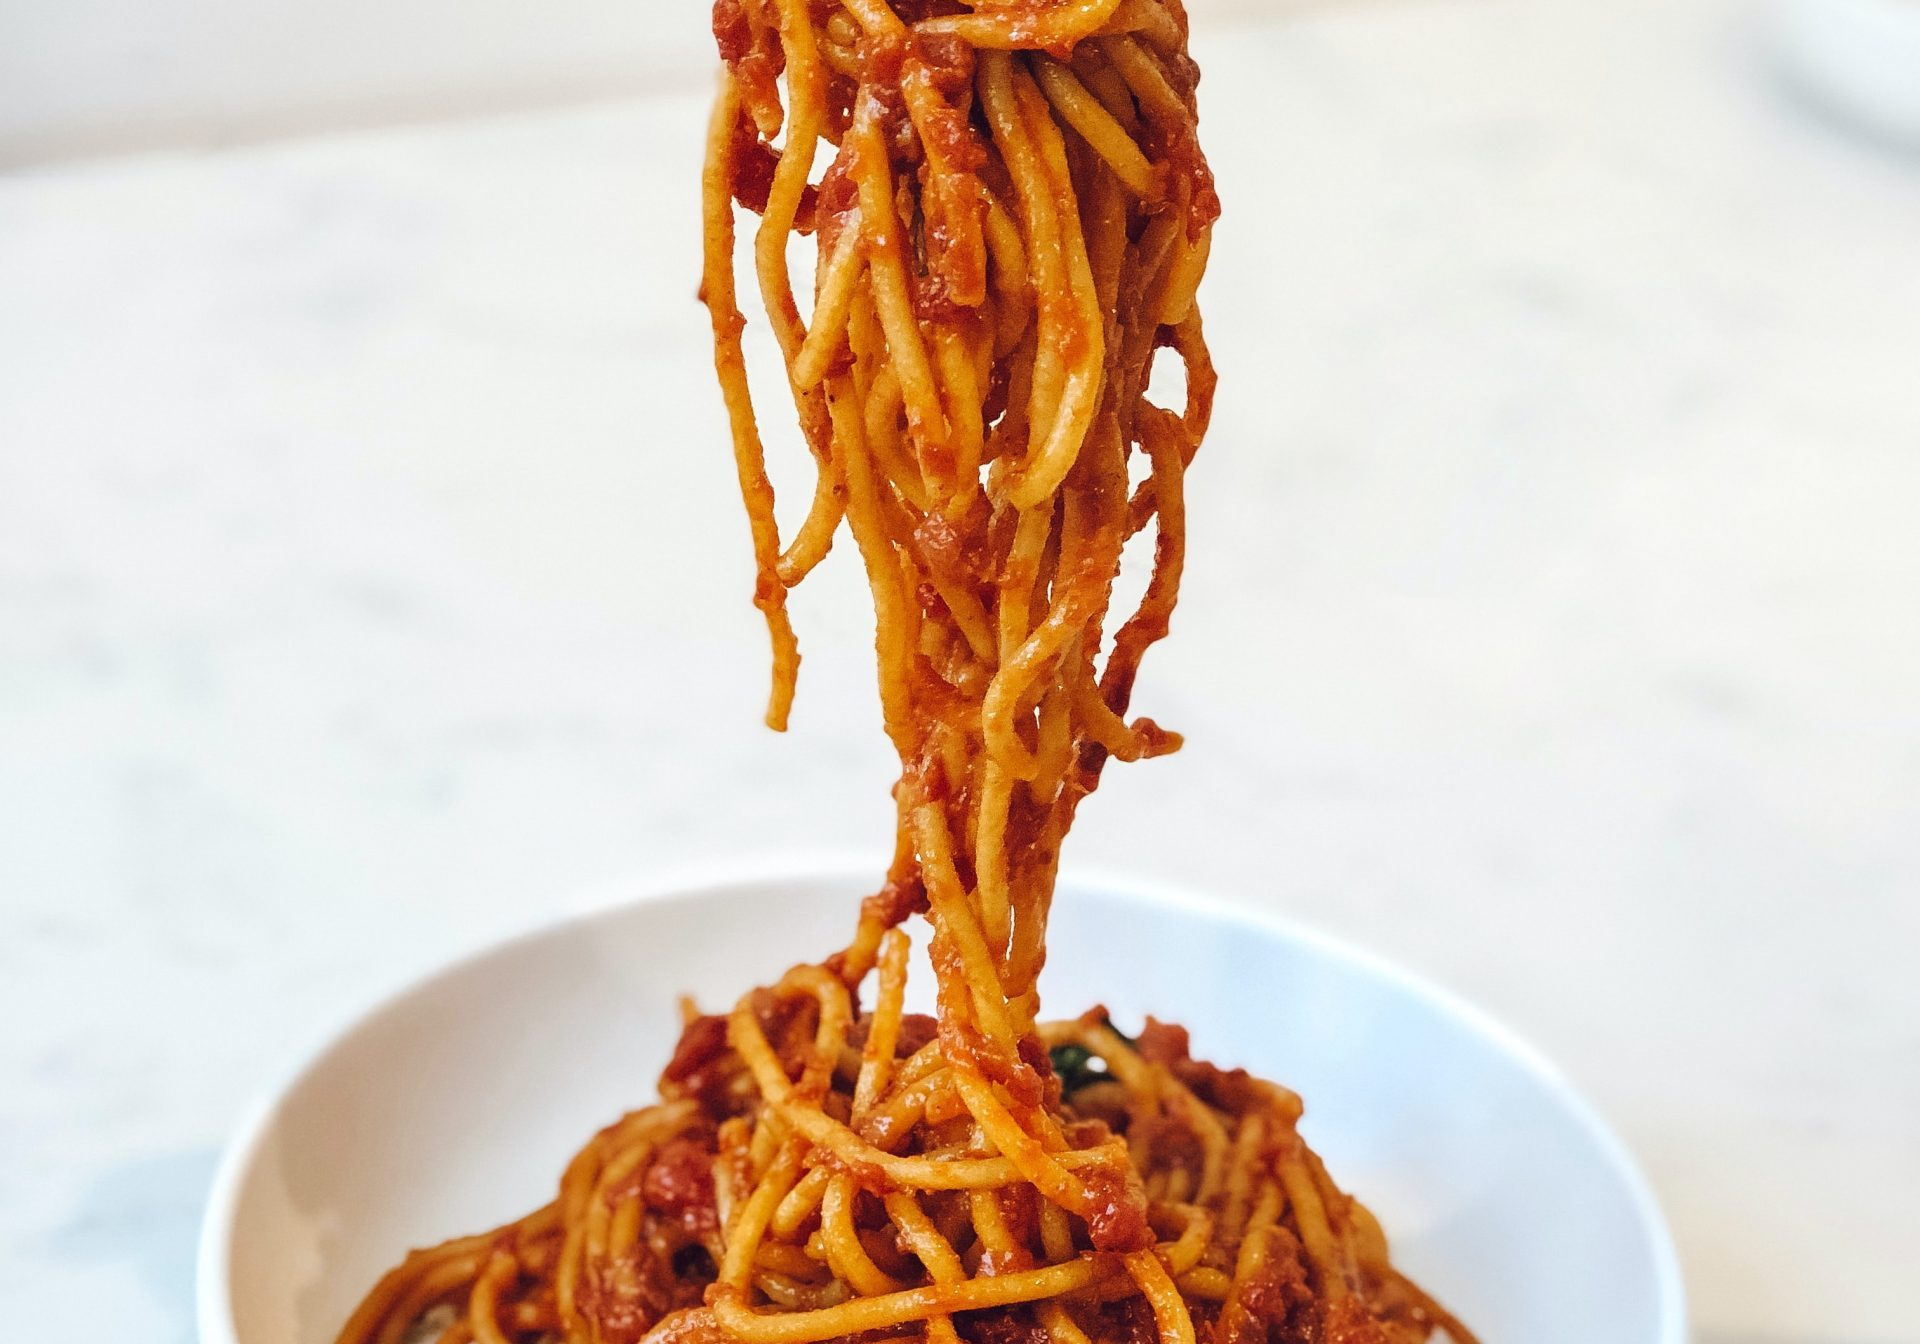 Spaghetti with tomato sauce in a white bowl on white background